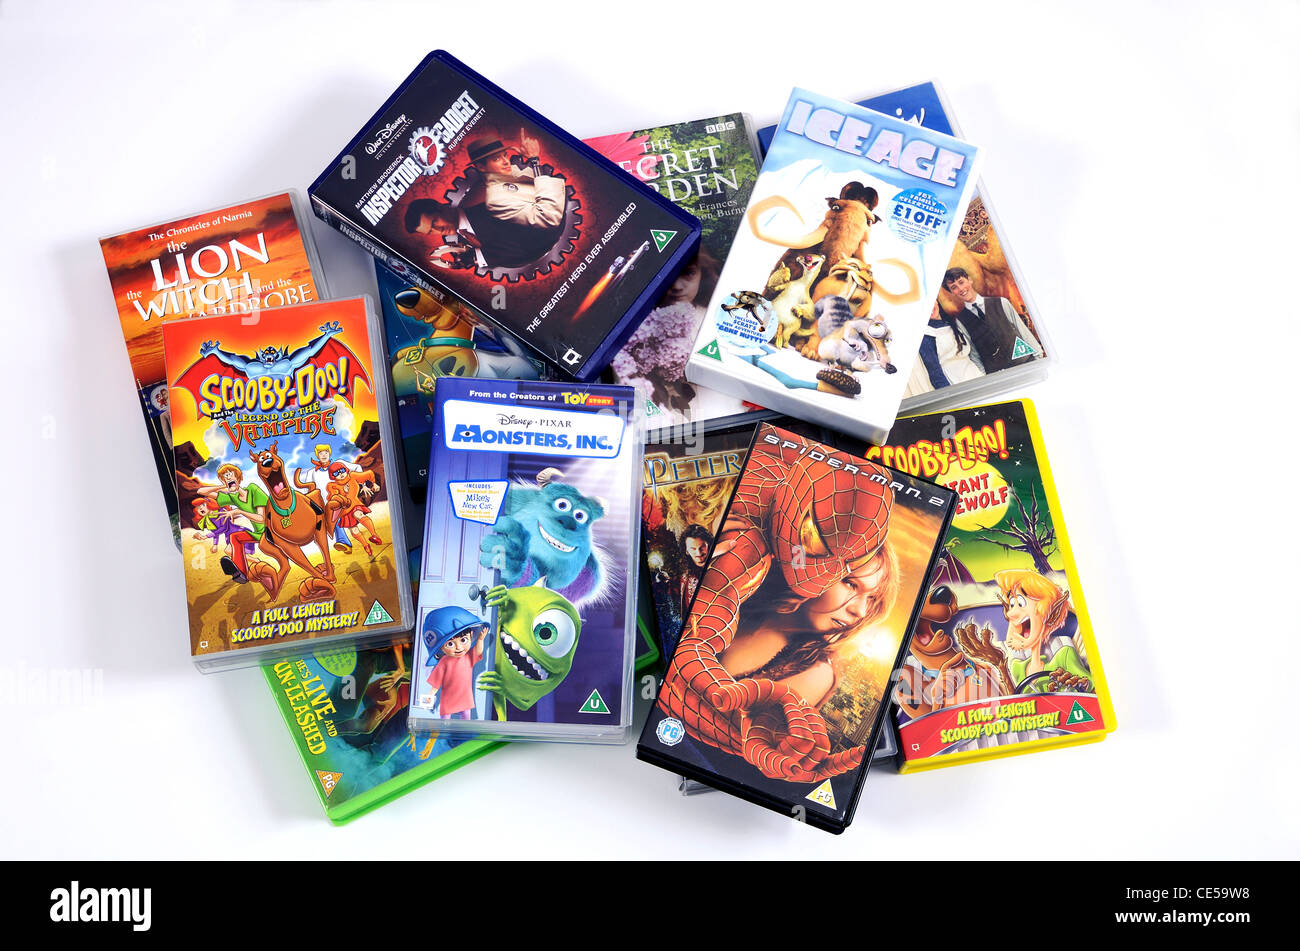 A selection of childrens films on video cassette - Stock Image